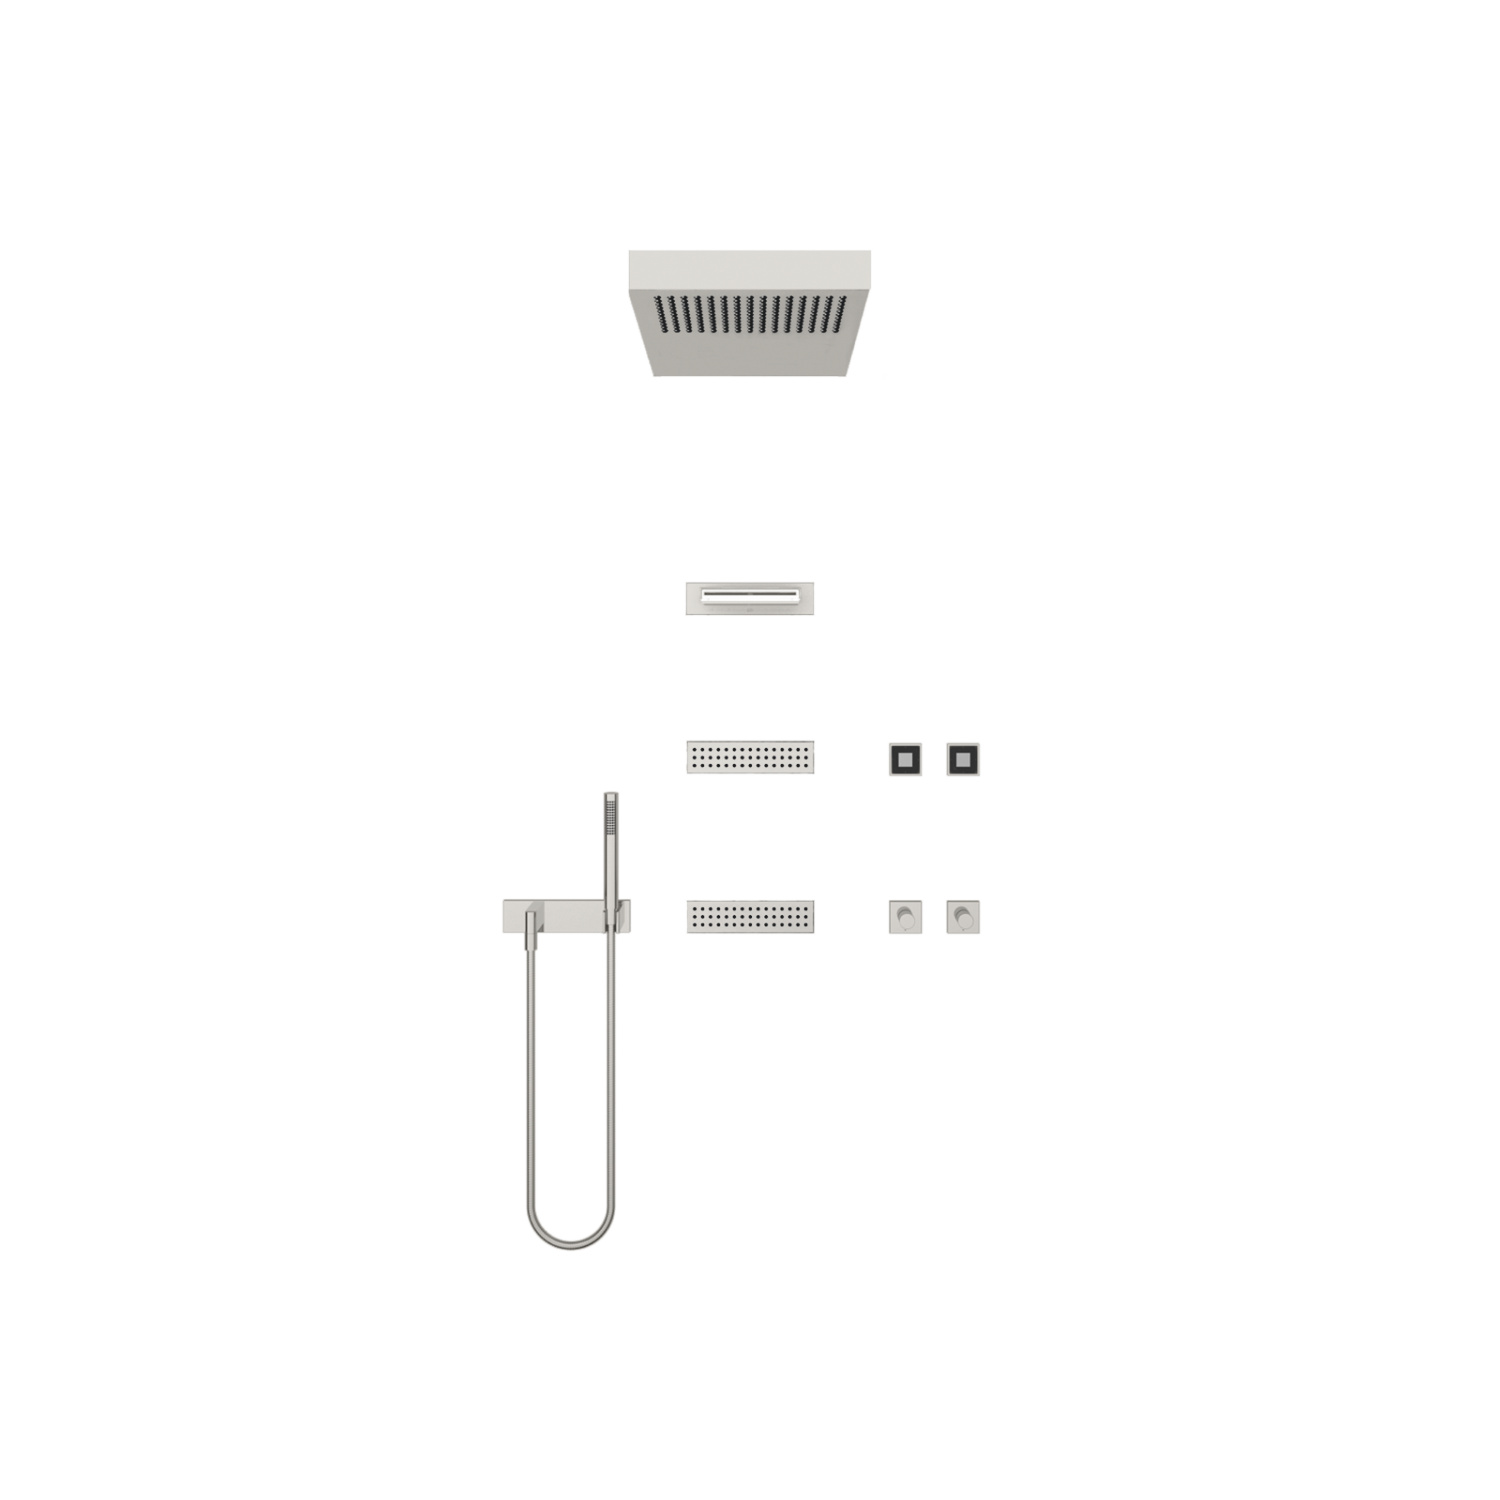 VERTICAL SHOWERᴬᵀᵀ Massage Shower  - Brushed stainless steel / platinum matt - 41 282 979-89